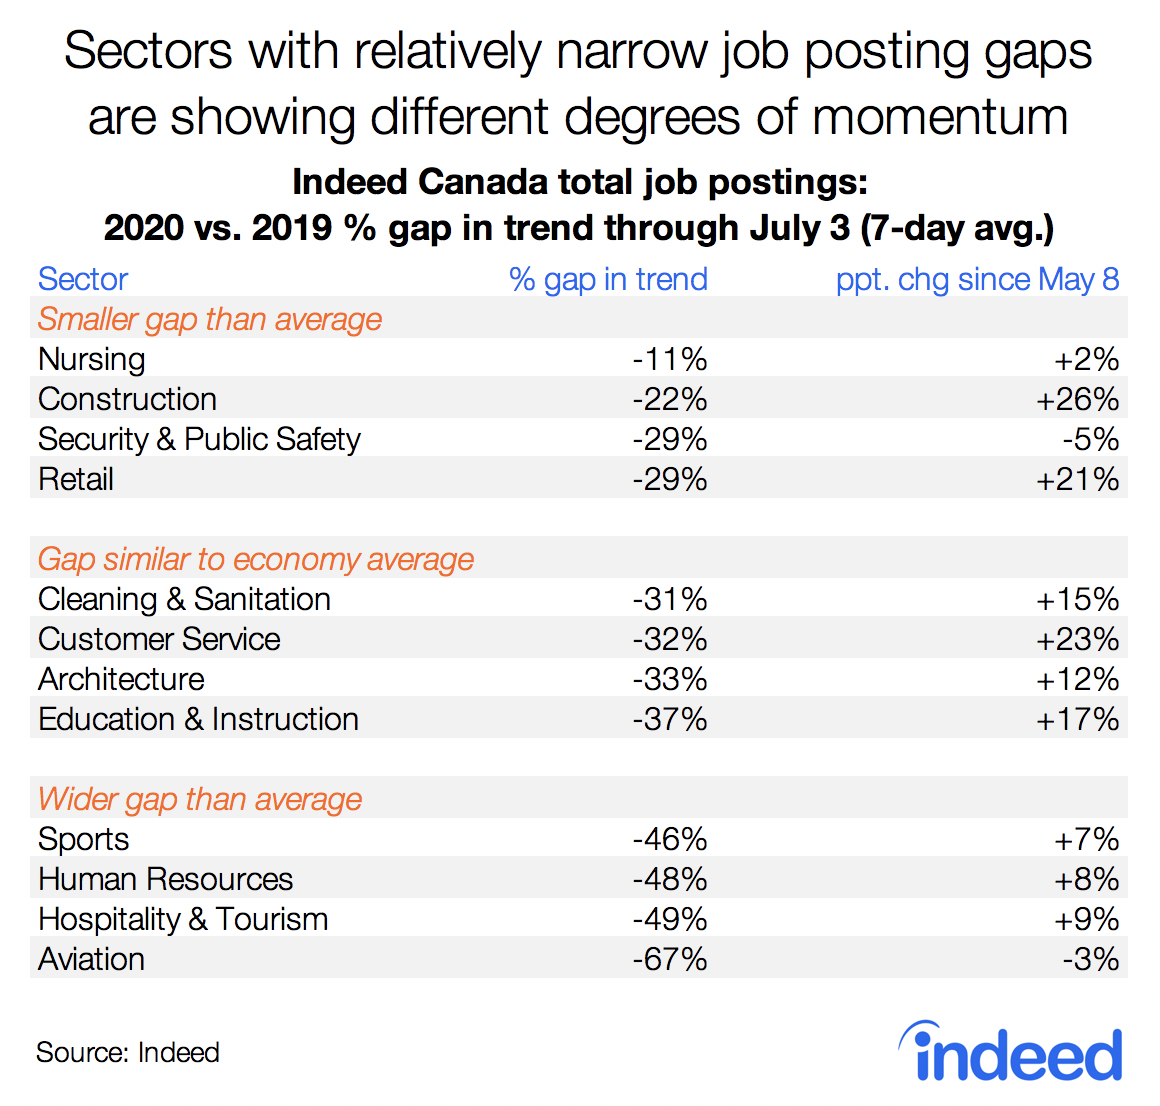 Sectors with relatively narrow job posting gaps are showing different degrees of momentum